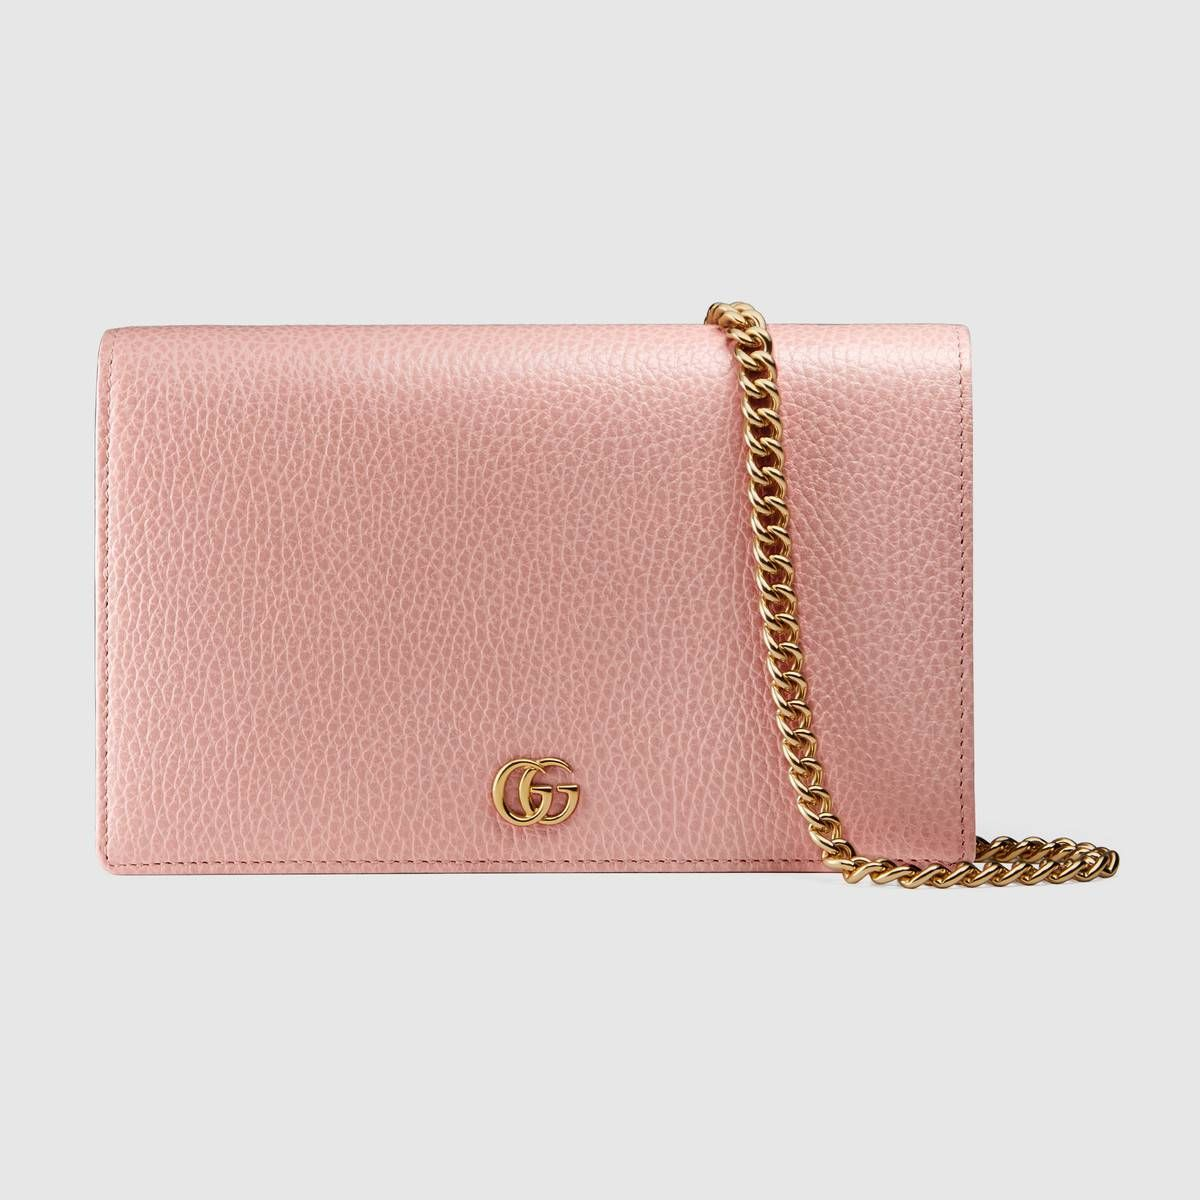 Gucci Gg Marmont Leather Mini Chain Bag 895 Has A Zipper Compartment 6 Card Slots Wallet On Chain And One Ope Mini Chain Bag Wallets For Women Chain Bags